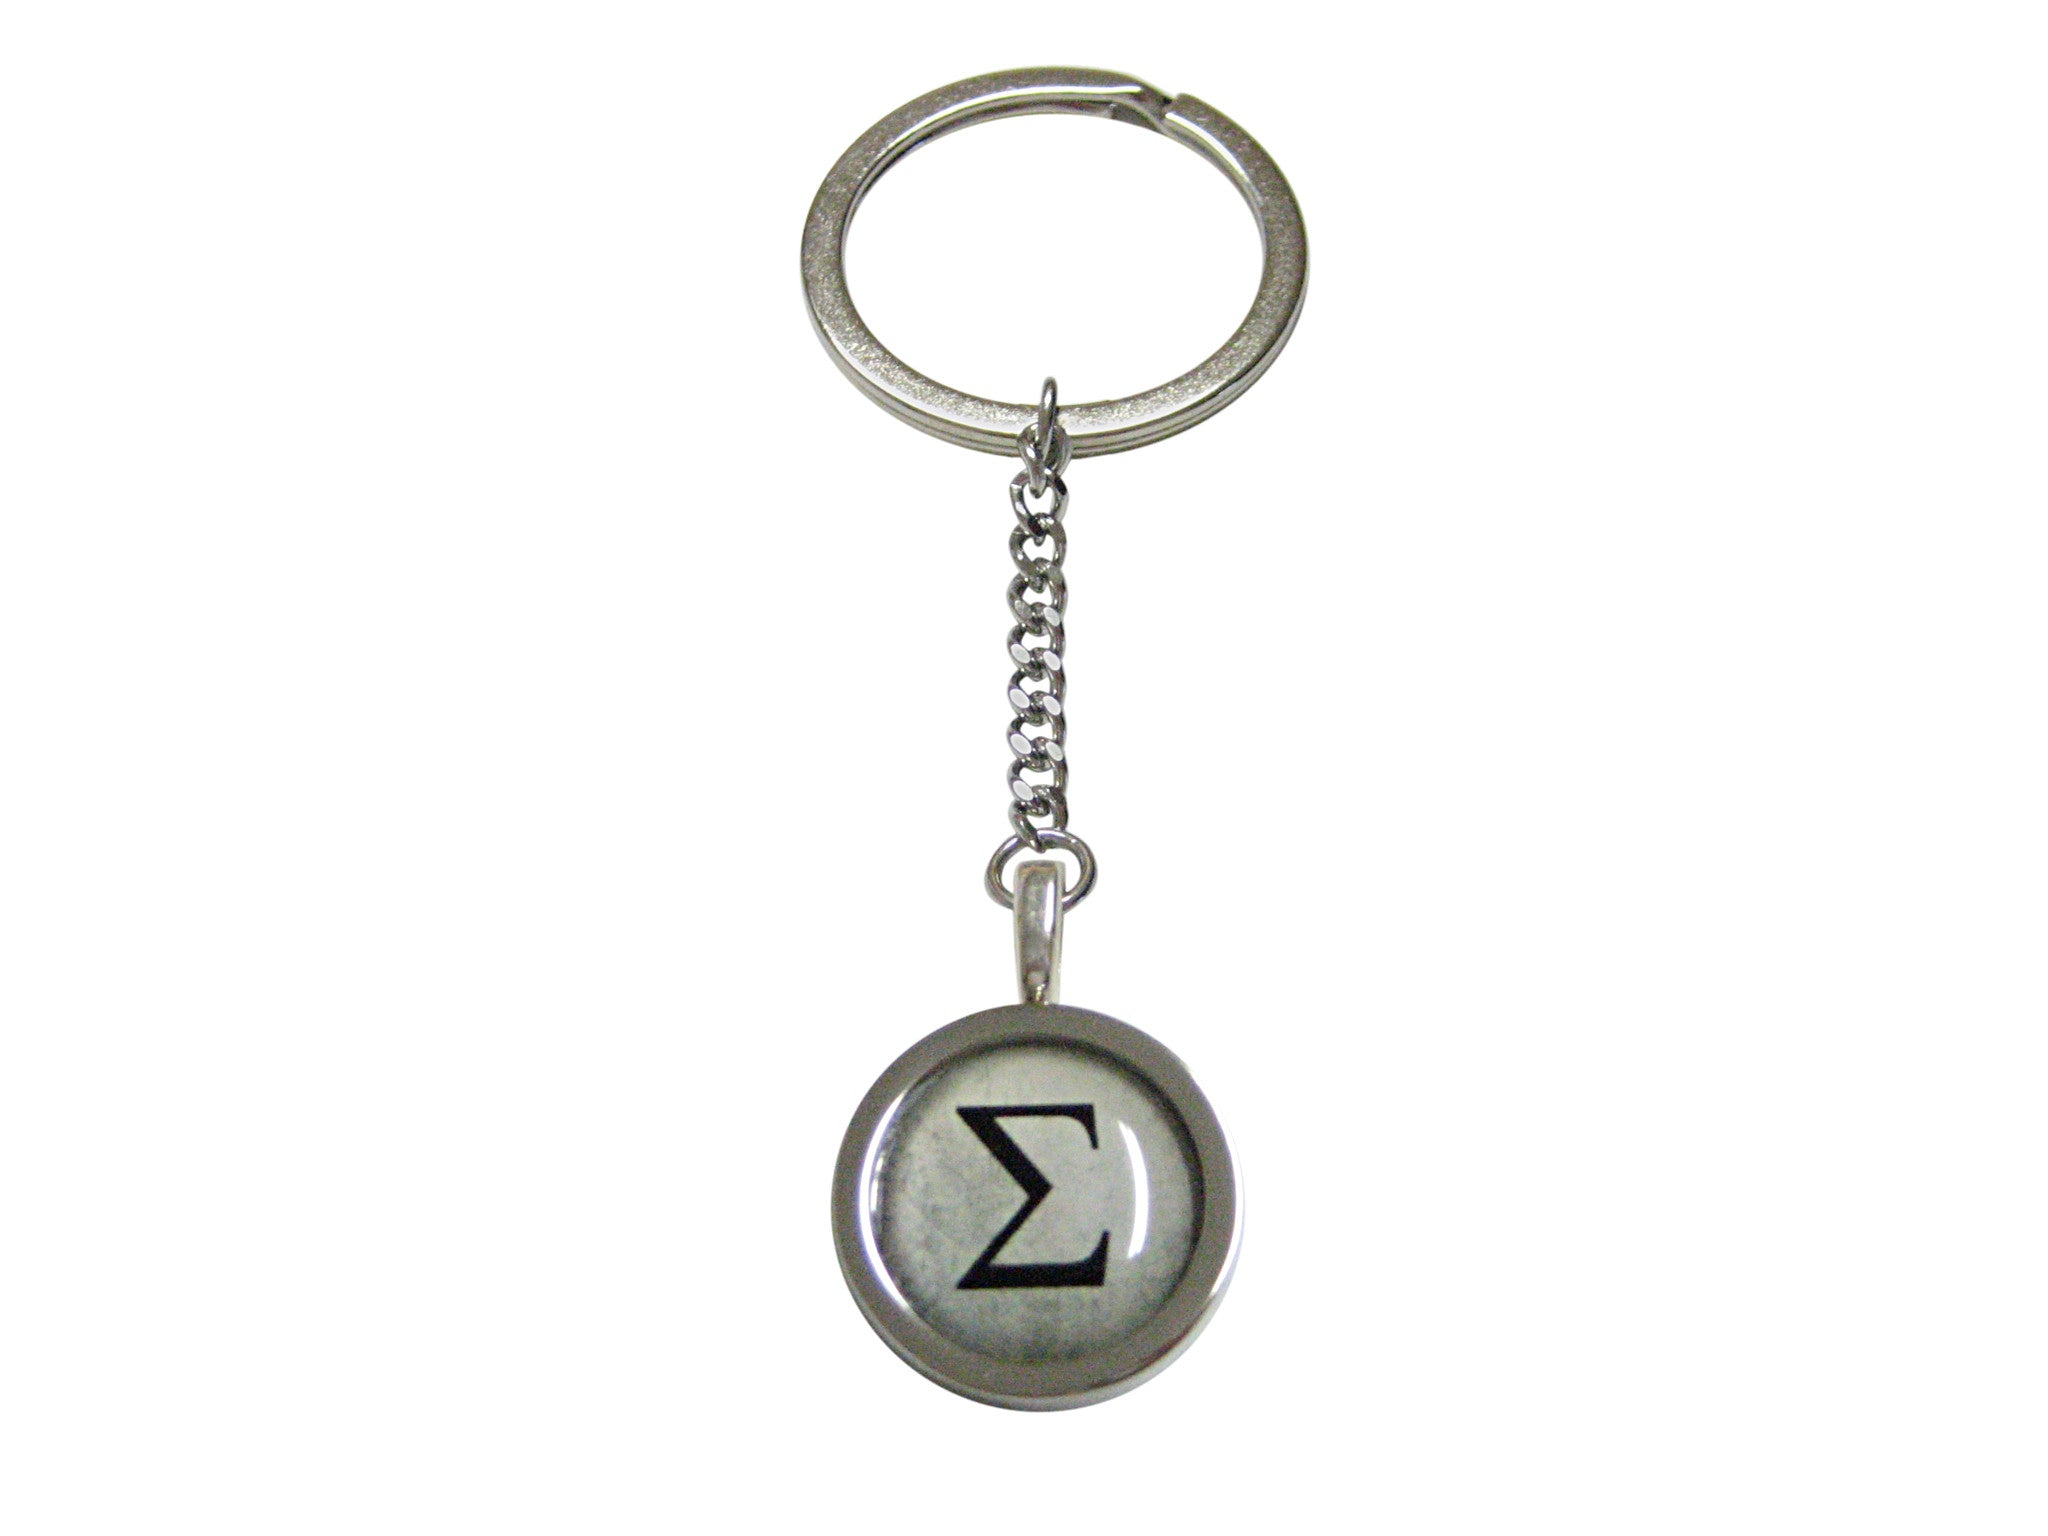 Bordered Mathematical Greek Sigma Symbol Pendant Keychain Kiola